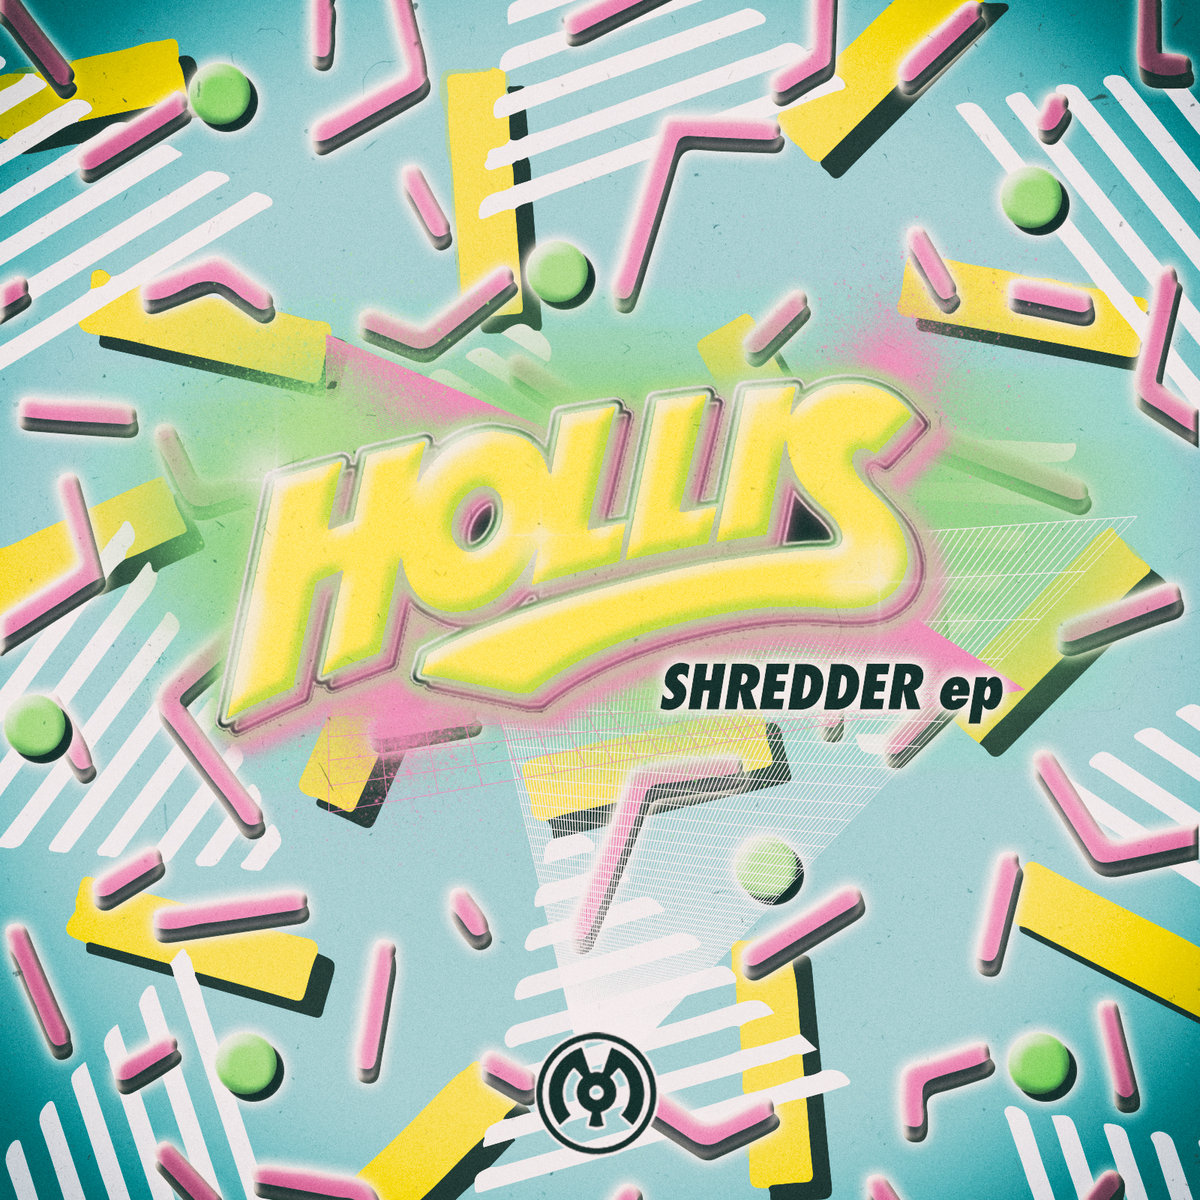 Hollis - Shredder EP